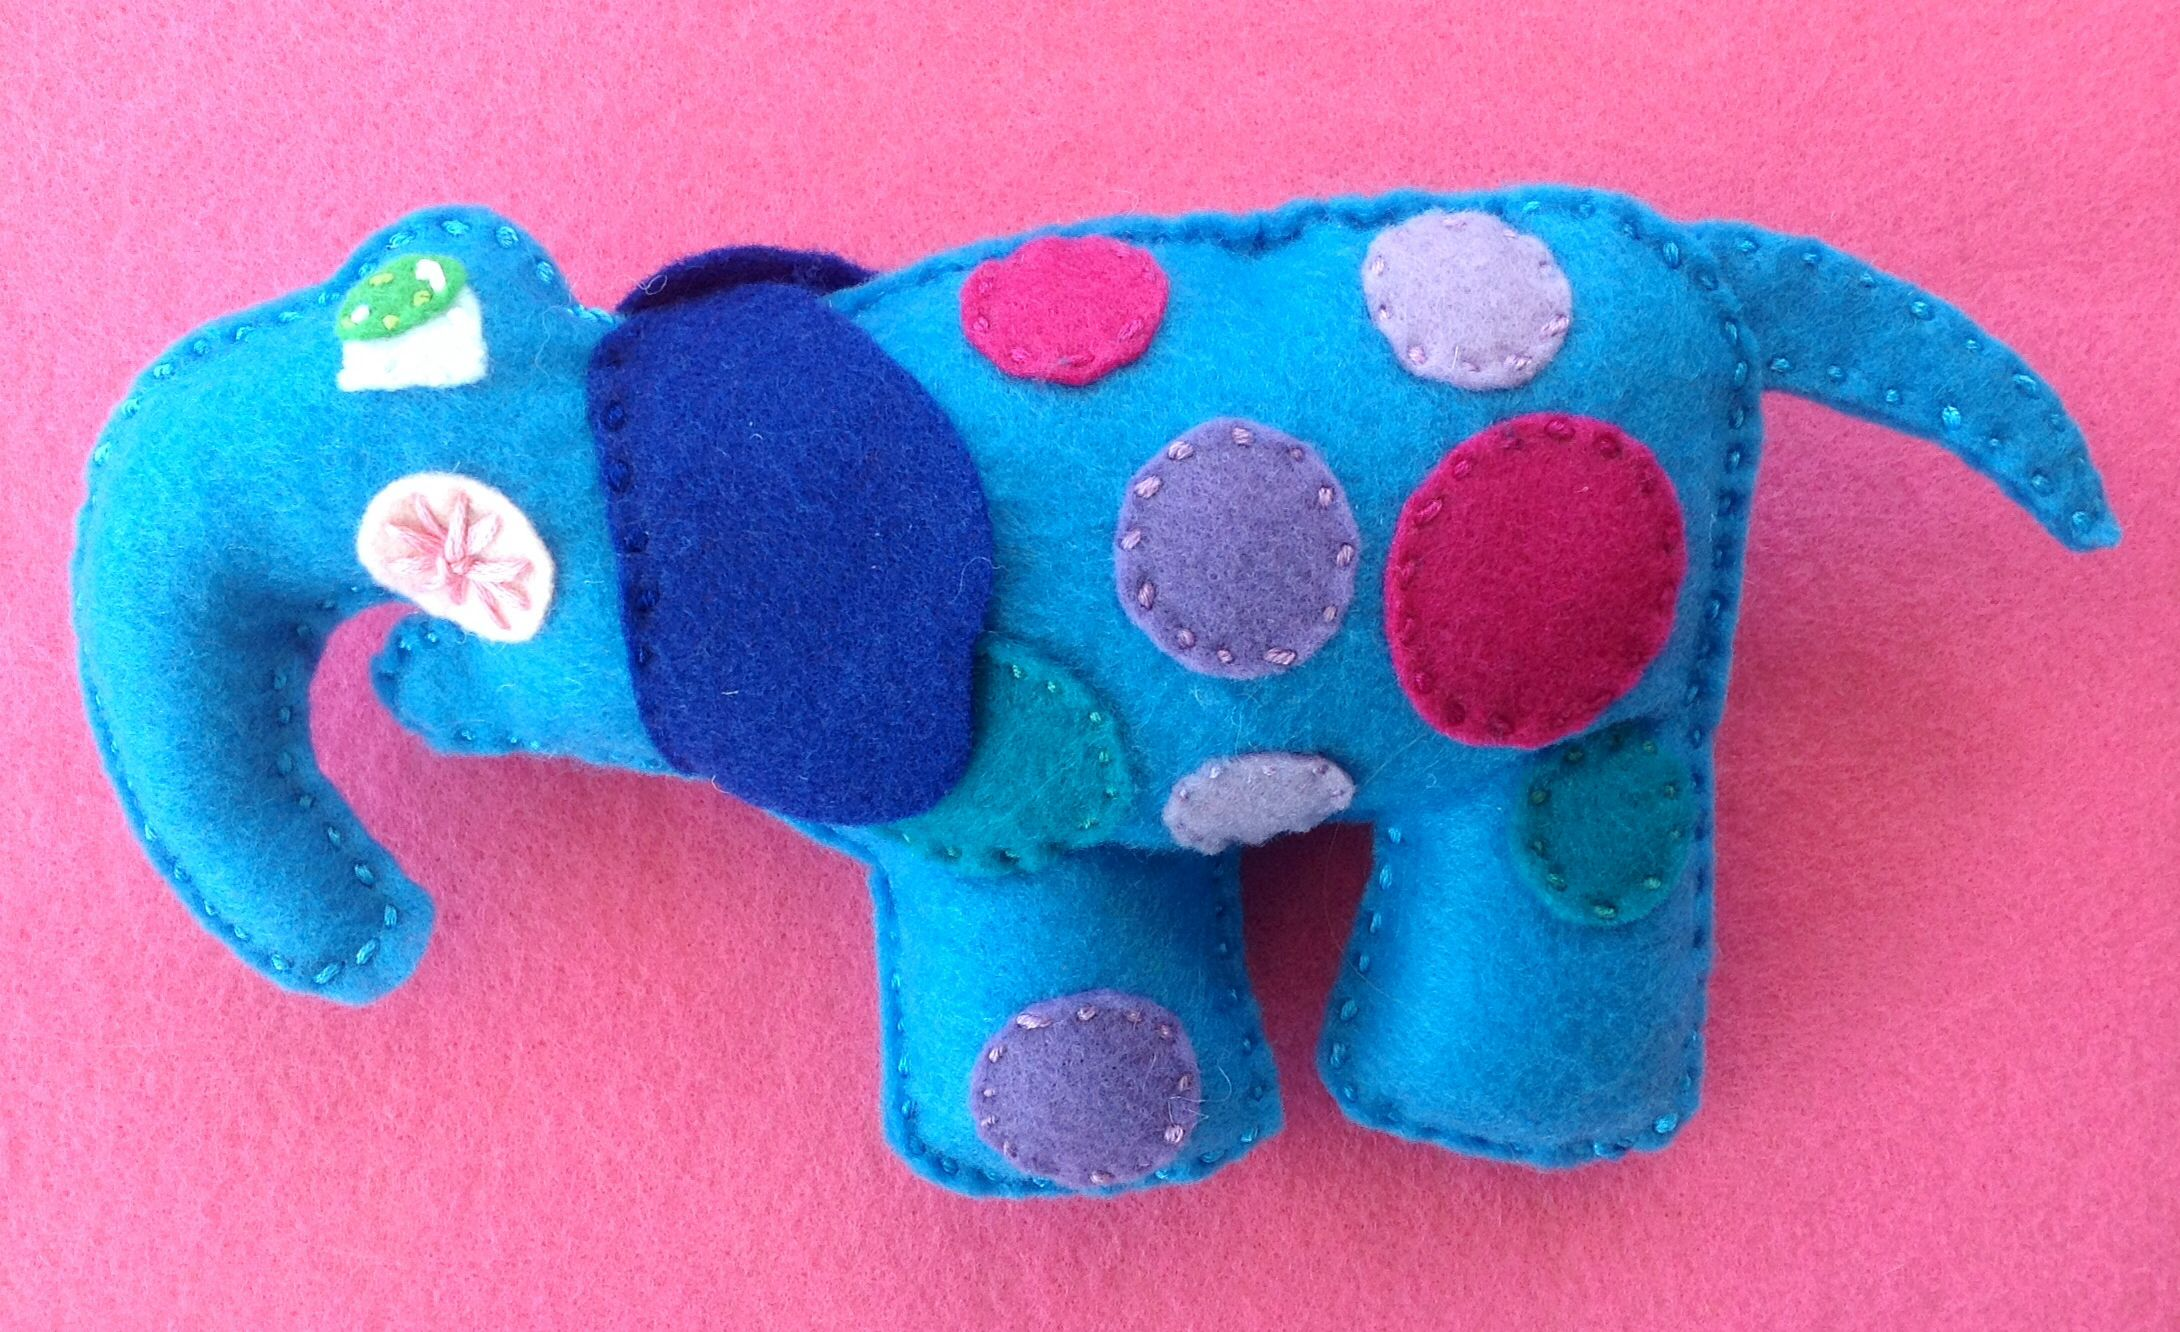 Elephant plush baby rattle by Ecotrinkets - Amy Monthei